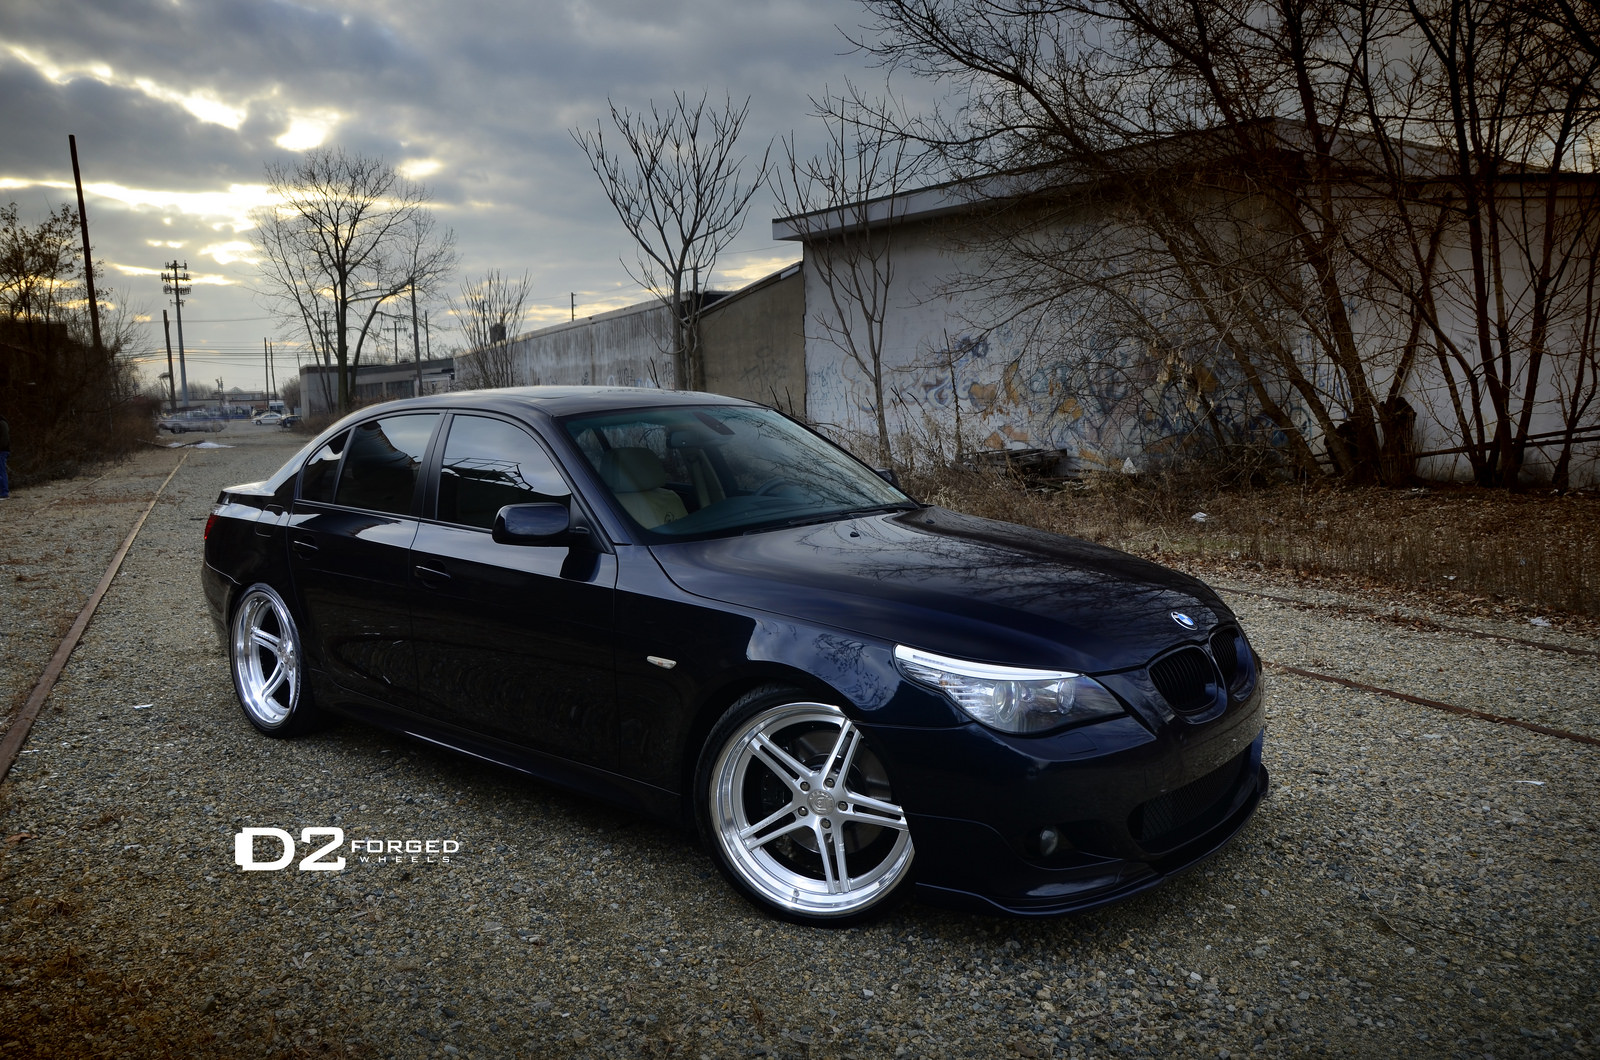 Clean bmw e60 5 series on d2forged wheels is here to stay autoevolution